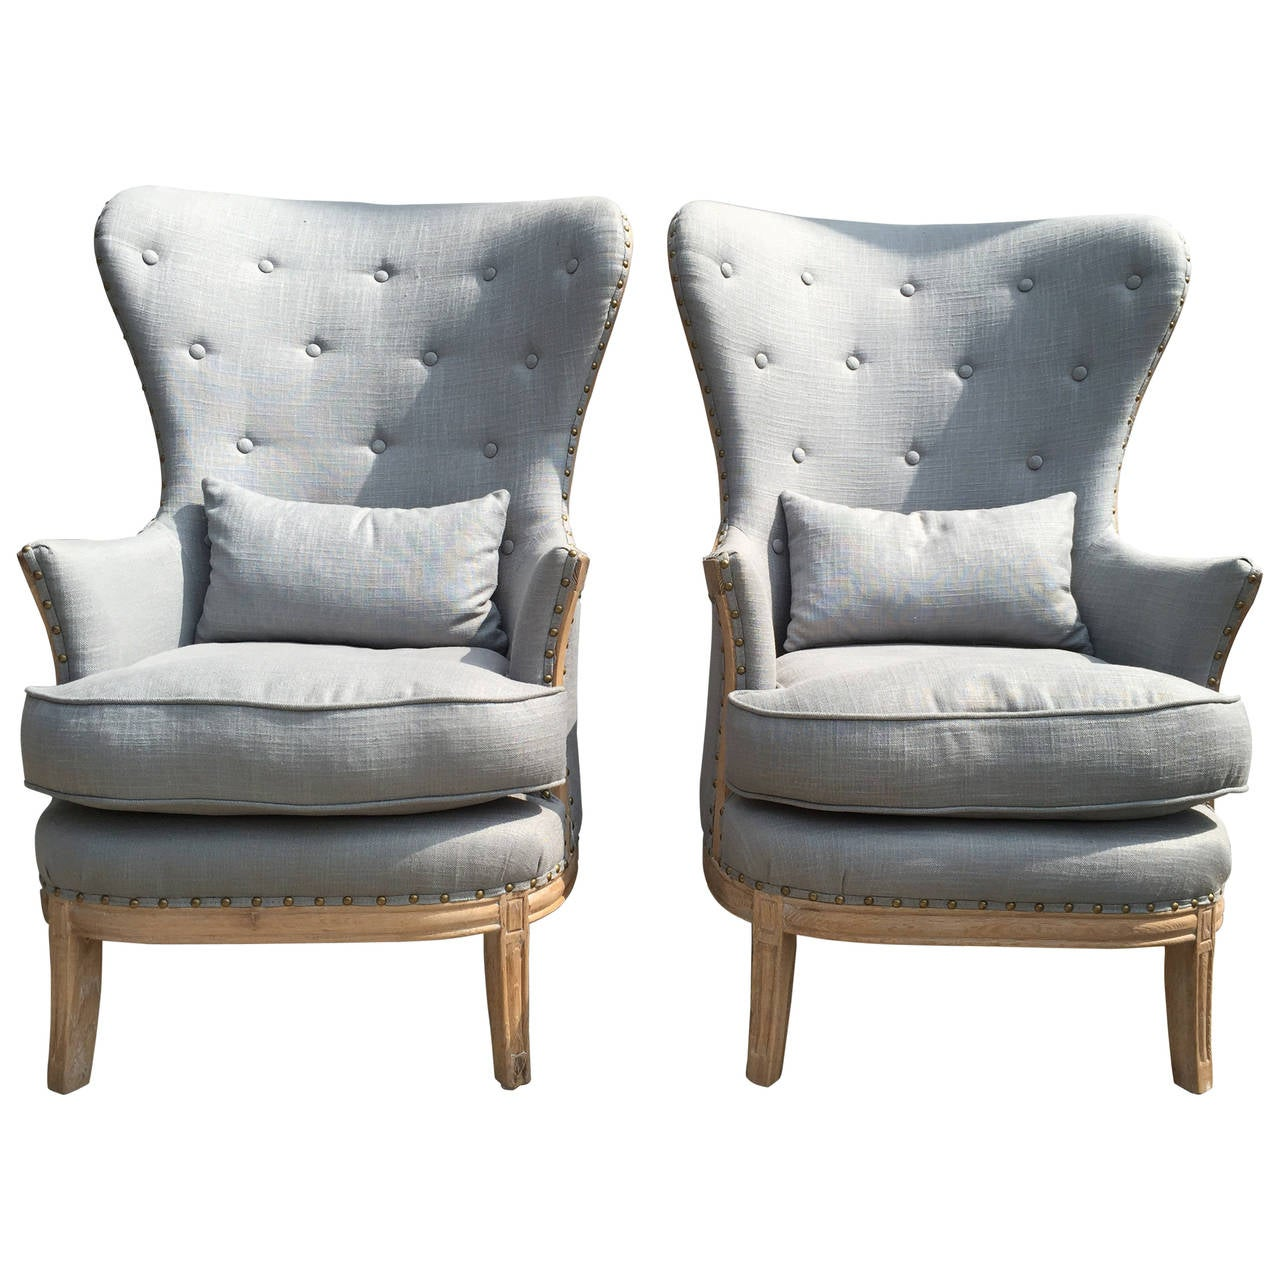 Pair of High Back Blue Grey Linen Upholstered Bergere